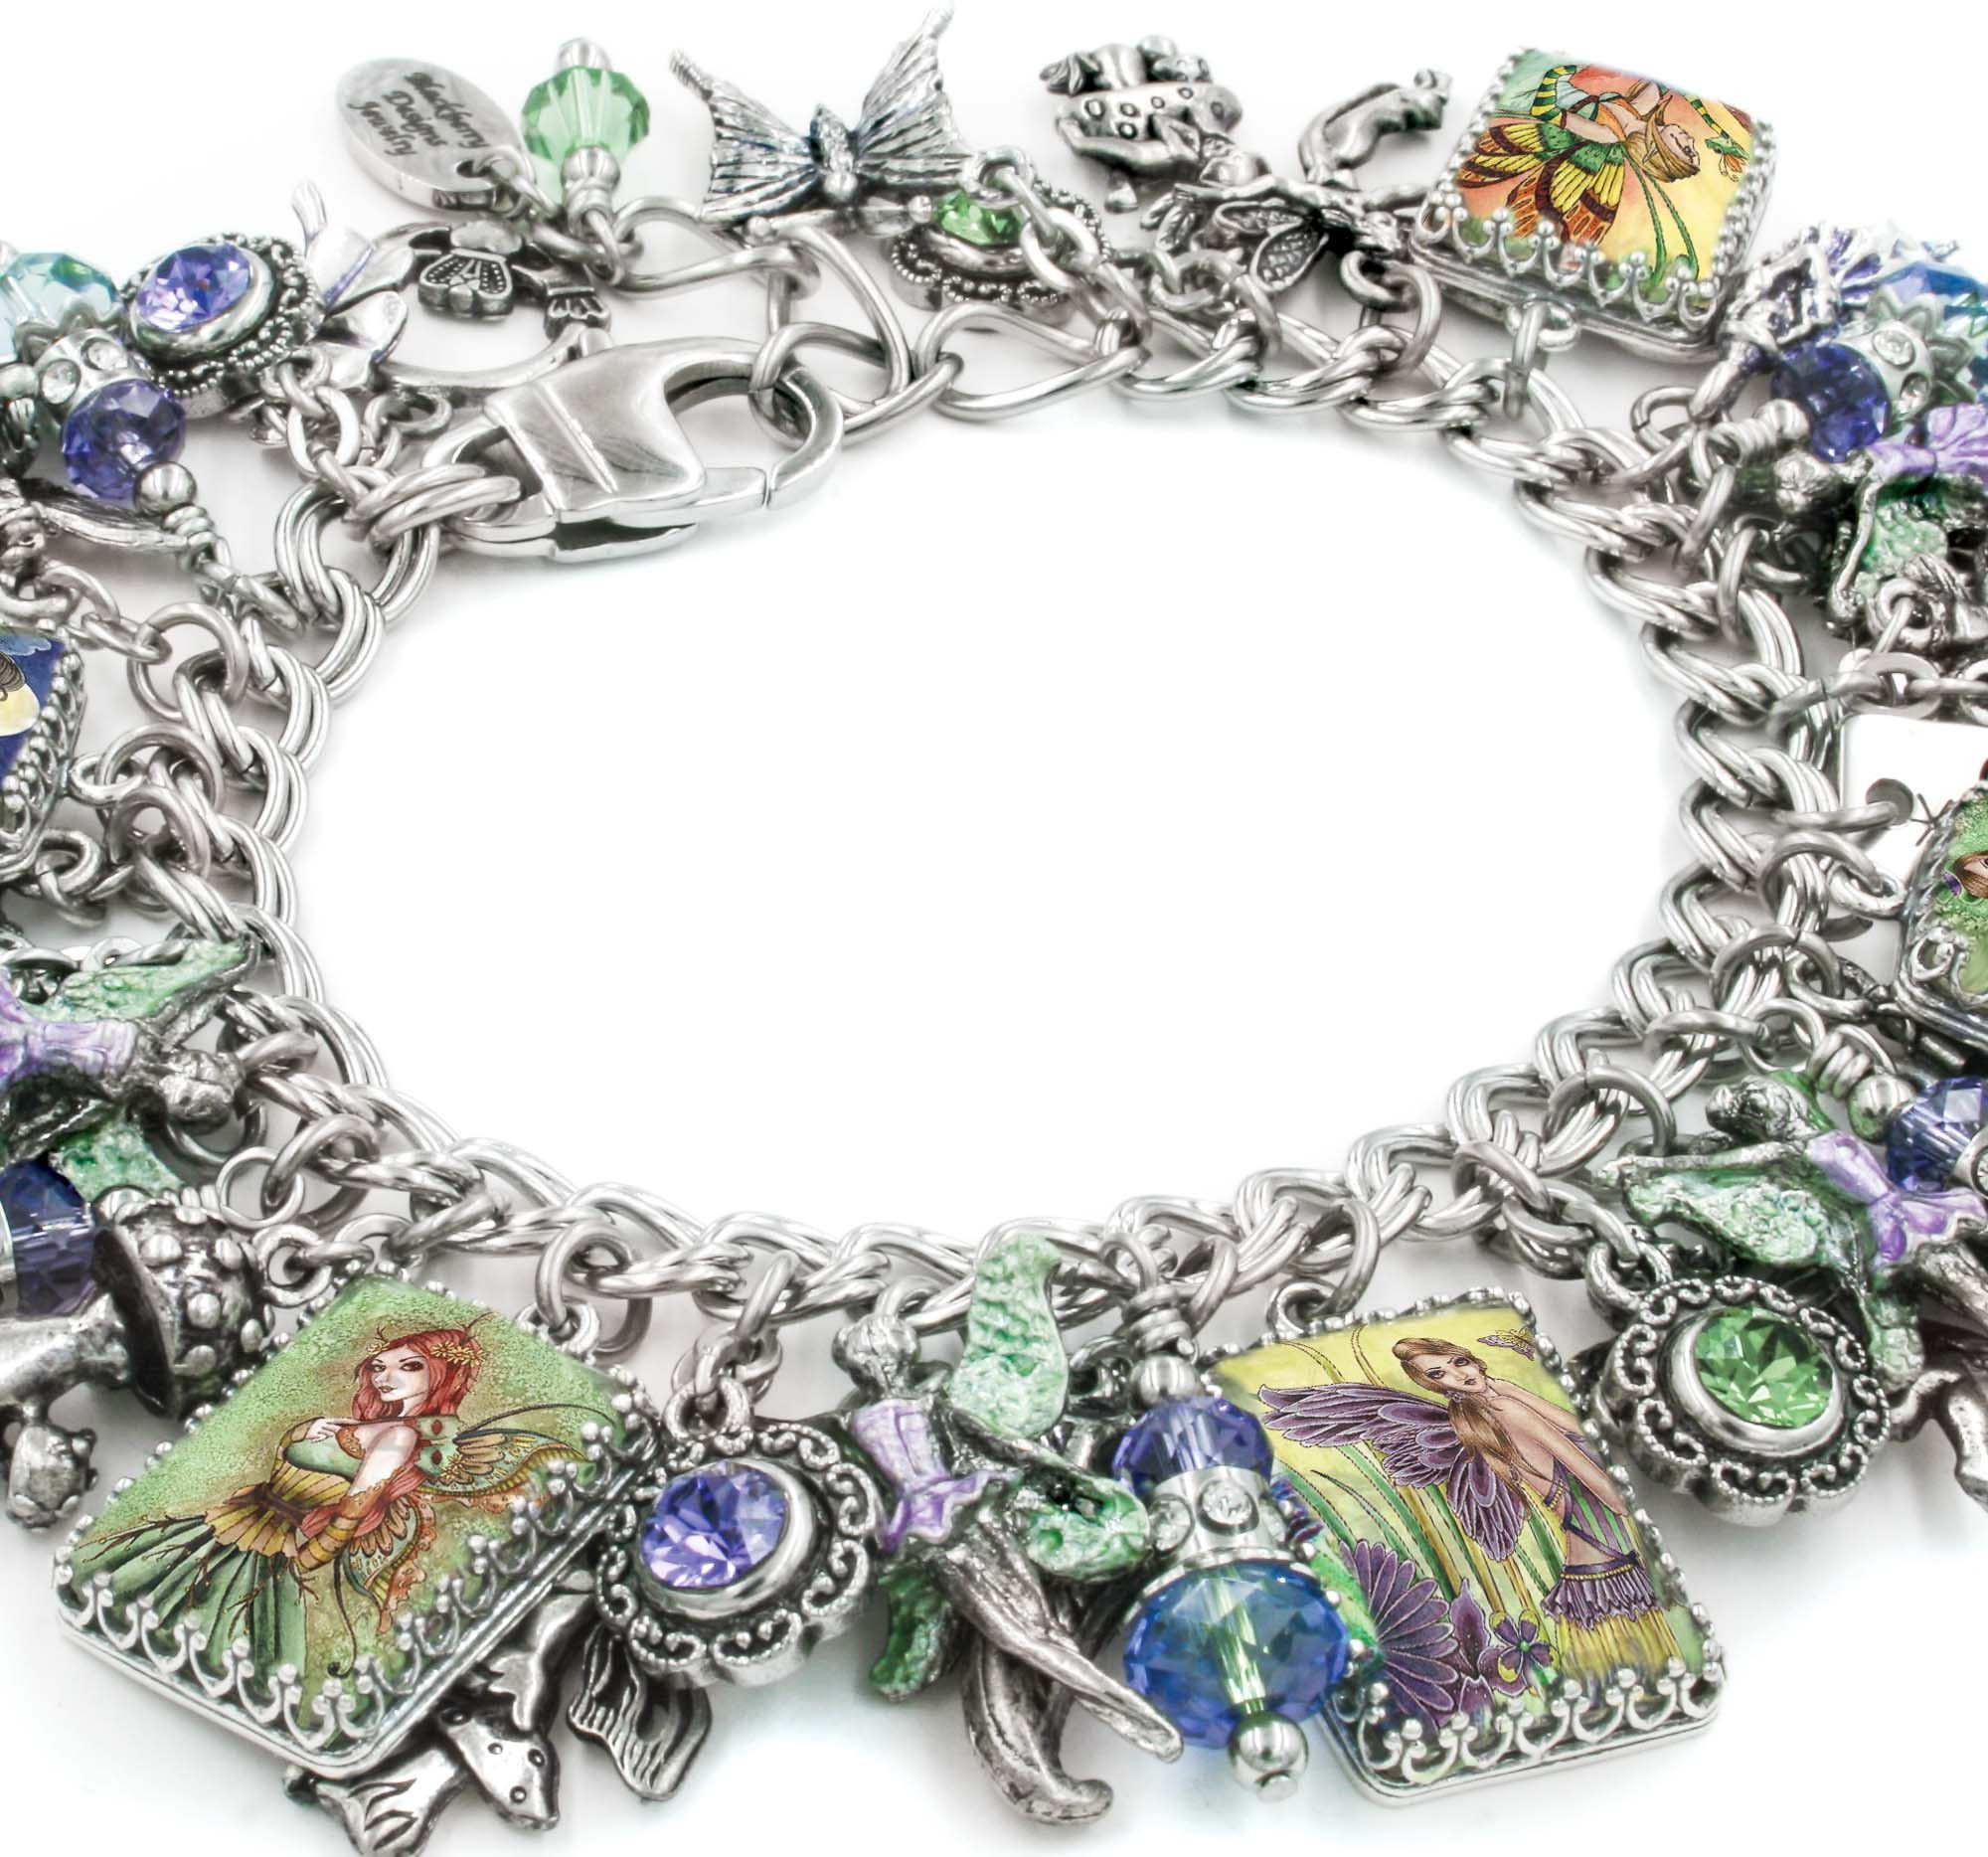 Irish Fairy Charm Bracelet | irish | Fairy jewelry, Irish